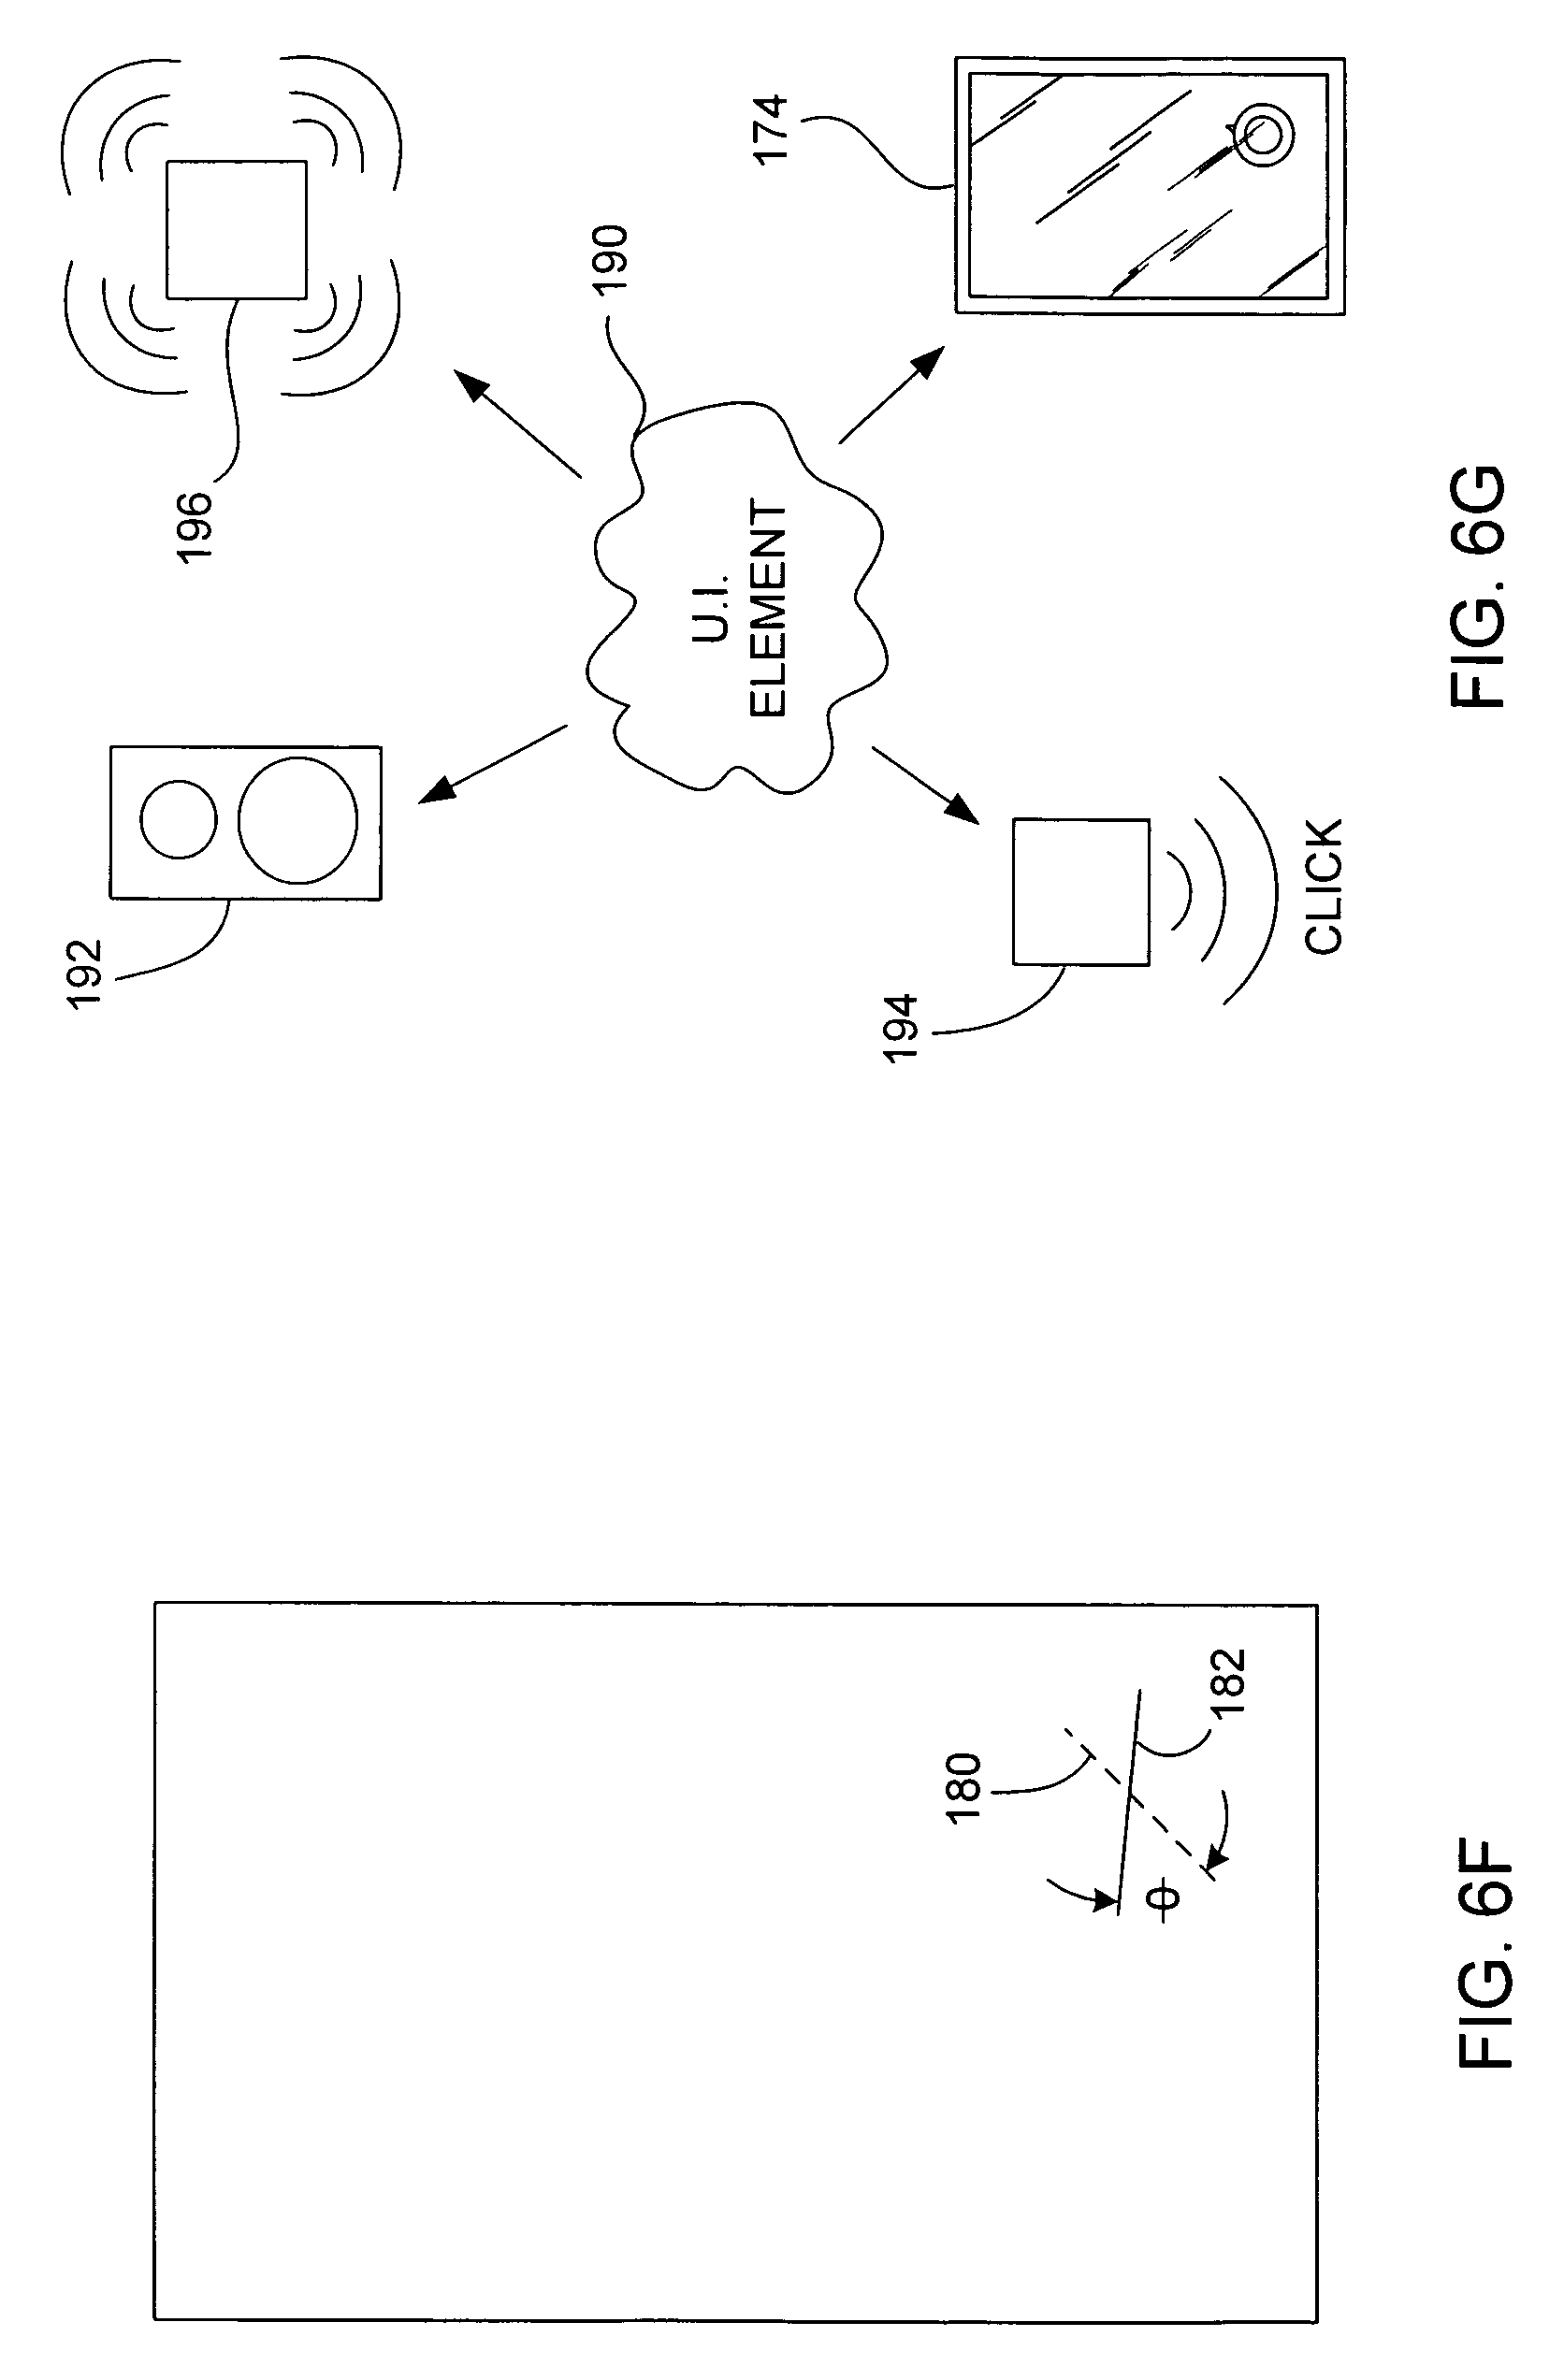 Us9348458b2 Gestures For Touch Sensitive Input Devices Google Dtmf Decoder Ic Working Electronic Circuits Youtube Patents